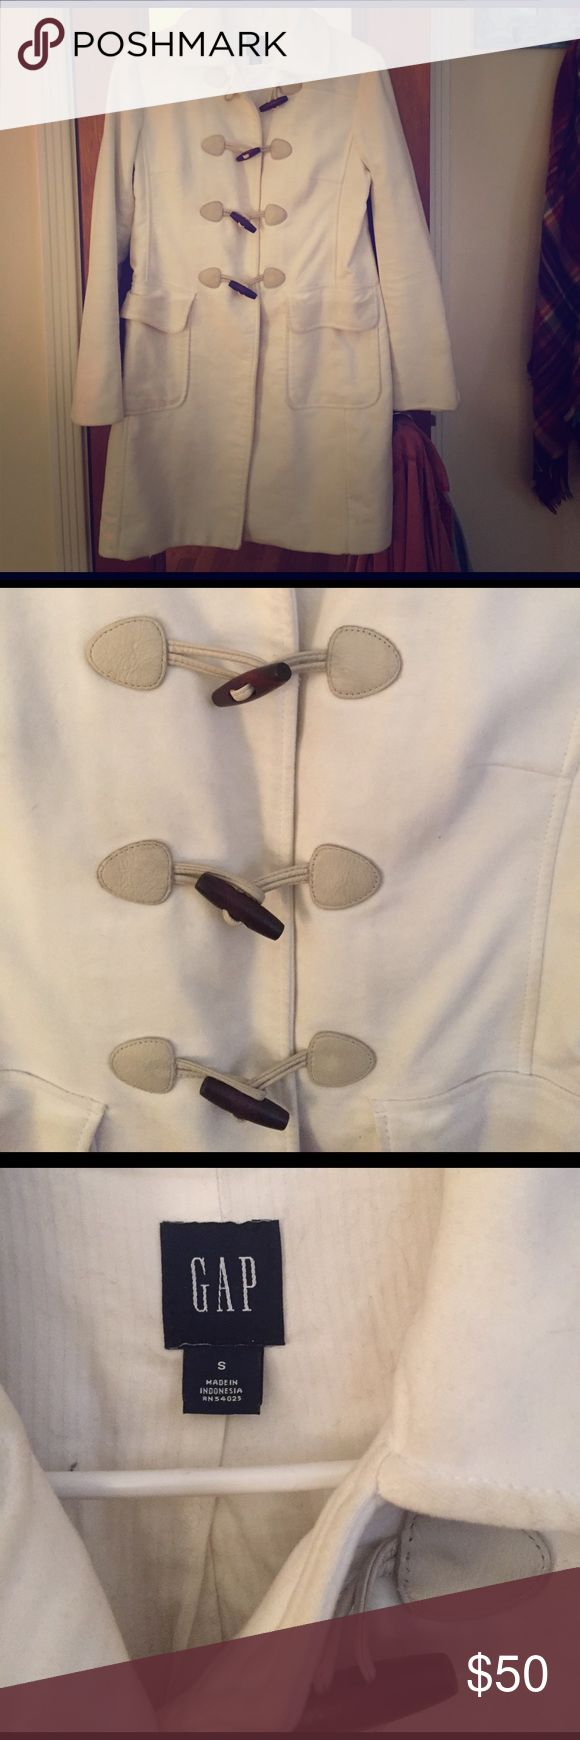 GAP coat White coat 100% cotton from the GAP size small, excellent condition! Leather and wooden tossle clasps GAP Jackets & Coats